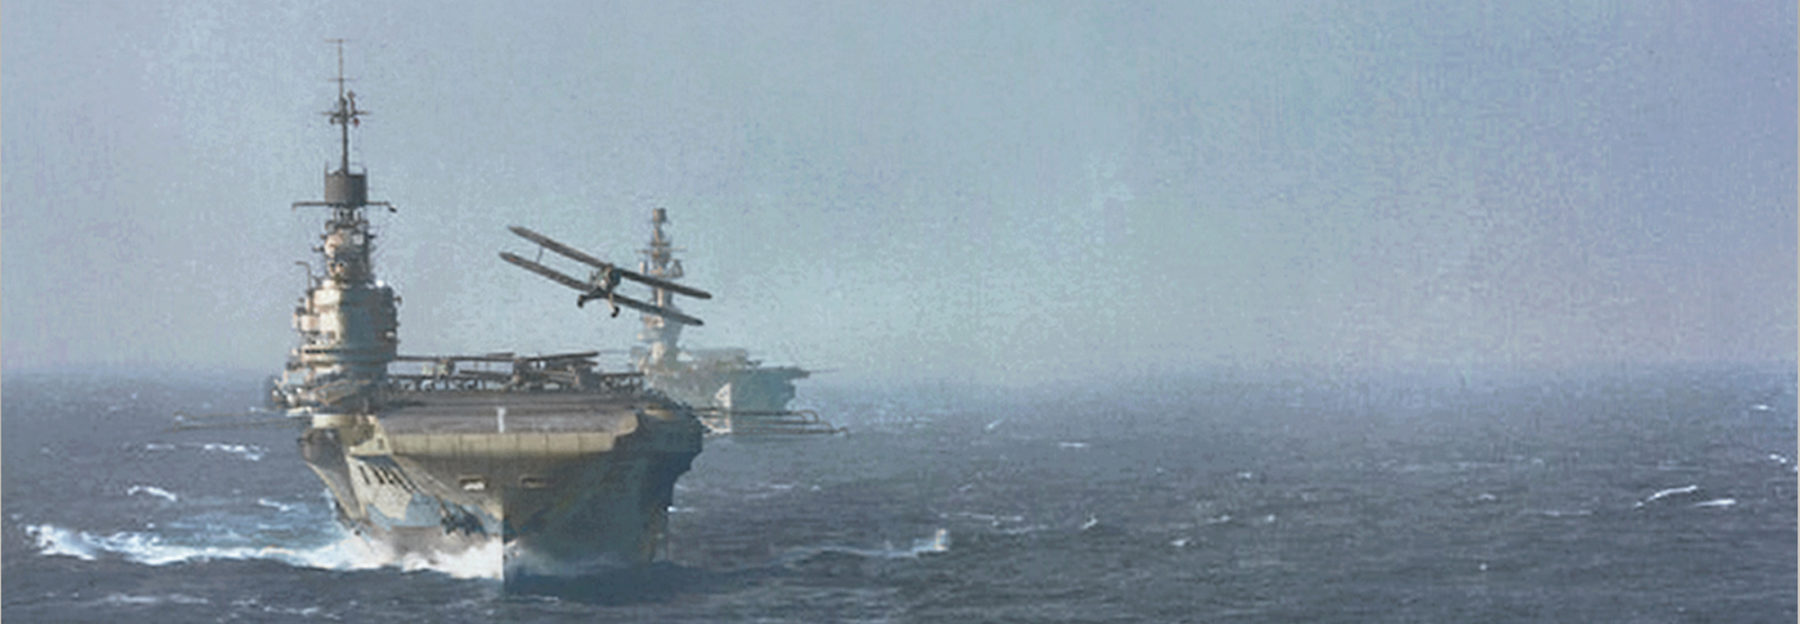 WW2 British Aircraft Carriers